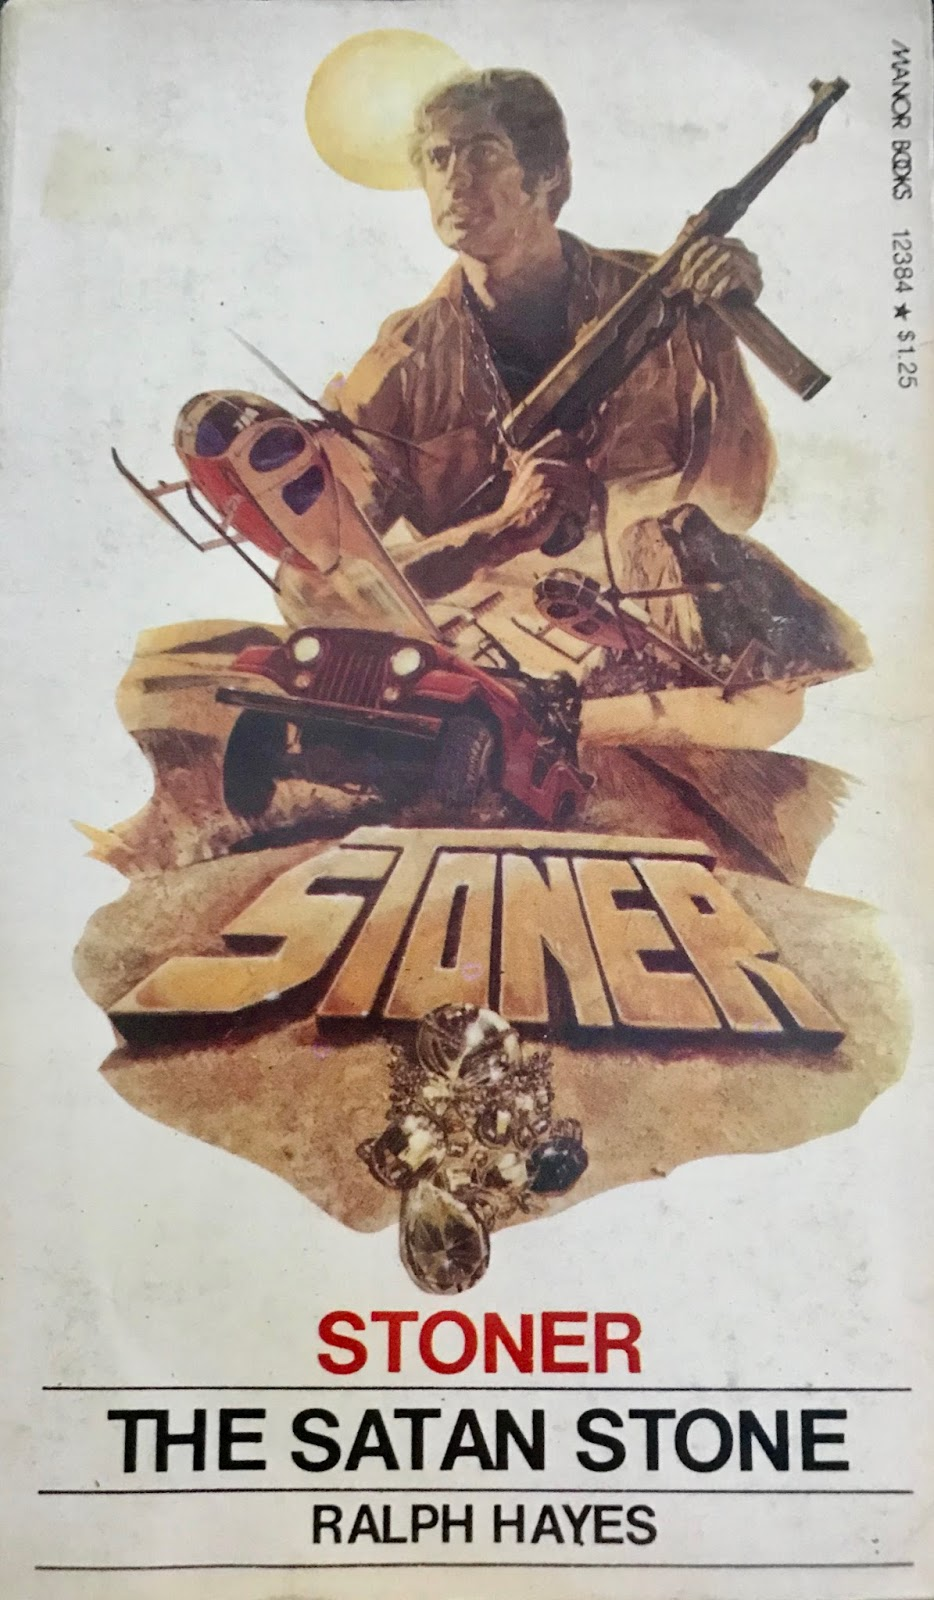 Paperback warrior march 2018 the satan stone is the second installment of ralph hayes 1970s treasure hunting action series stoner our hero is mark stoner and this four book series fandeluxe